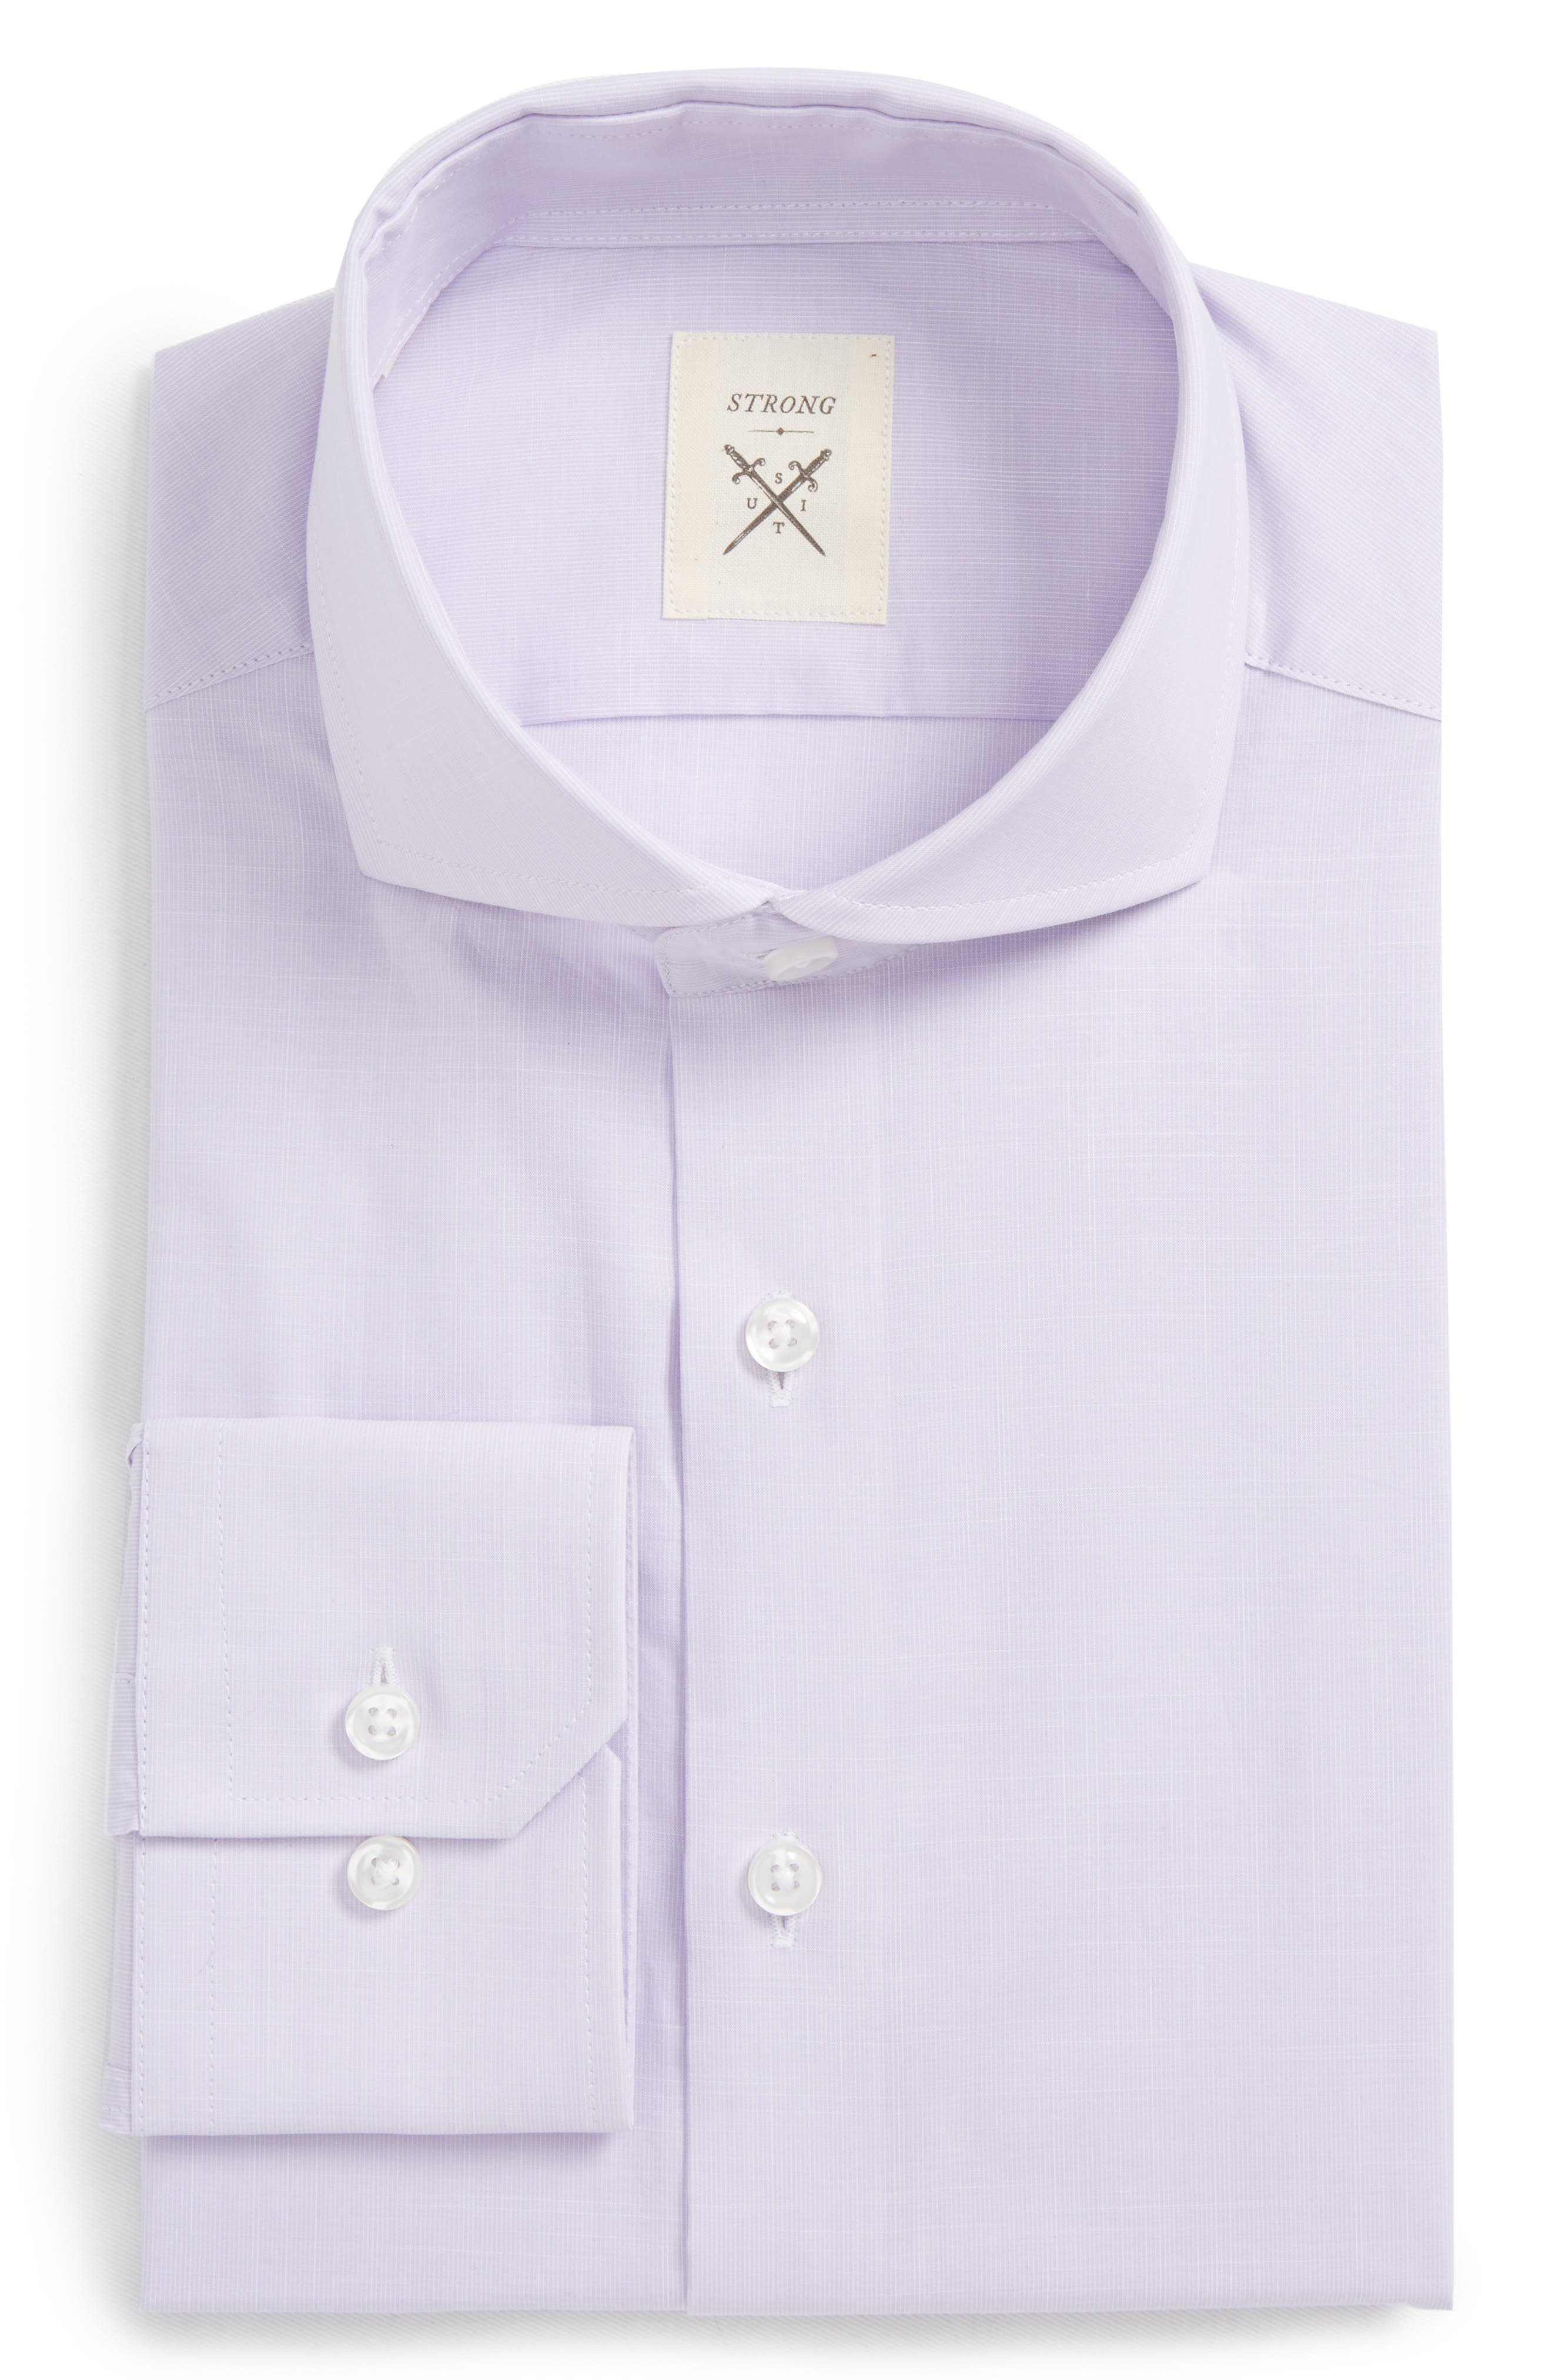 Espirit Trim Fit Solid Dress Shirt,                             Main thumbnail 1, color,                             530